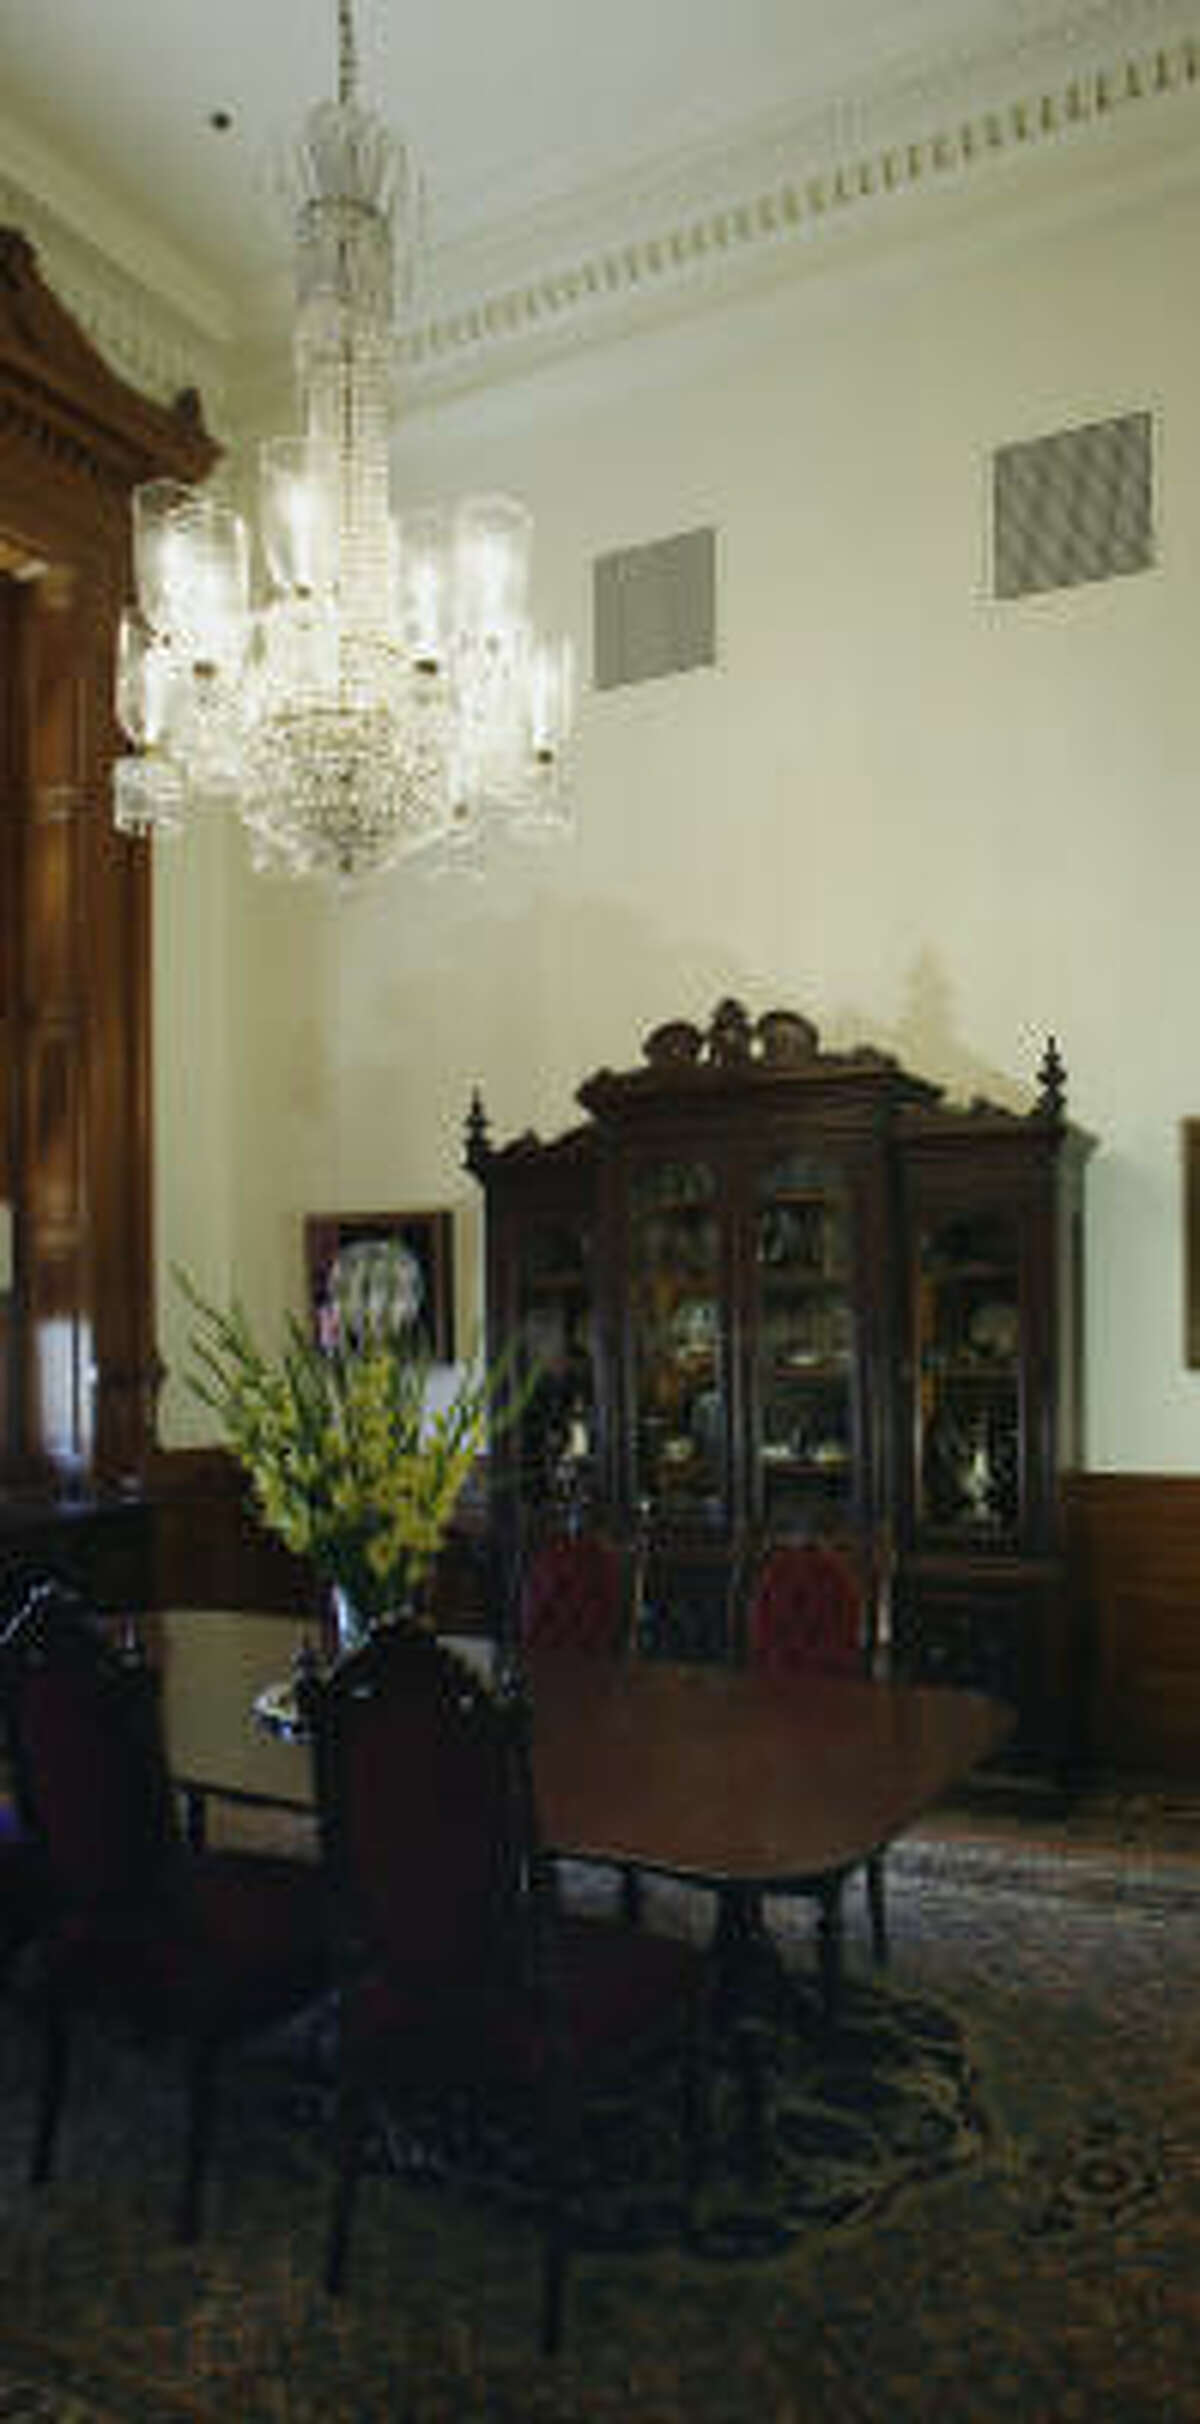 The purchase order for this chandelier hanging in the dining room of the Capitol apartment of the speaker of the Texas House of Representatives reveals a cost of $75,000.